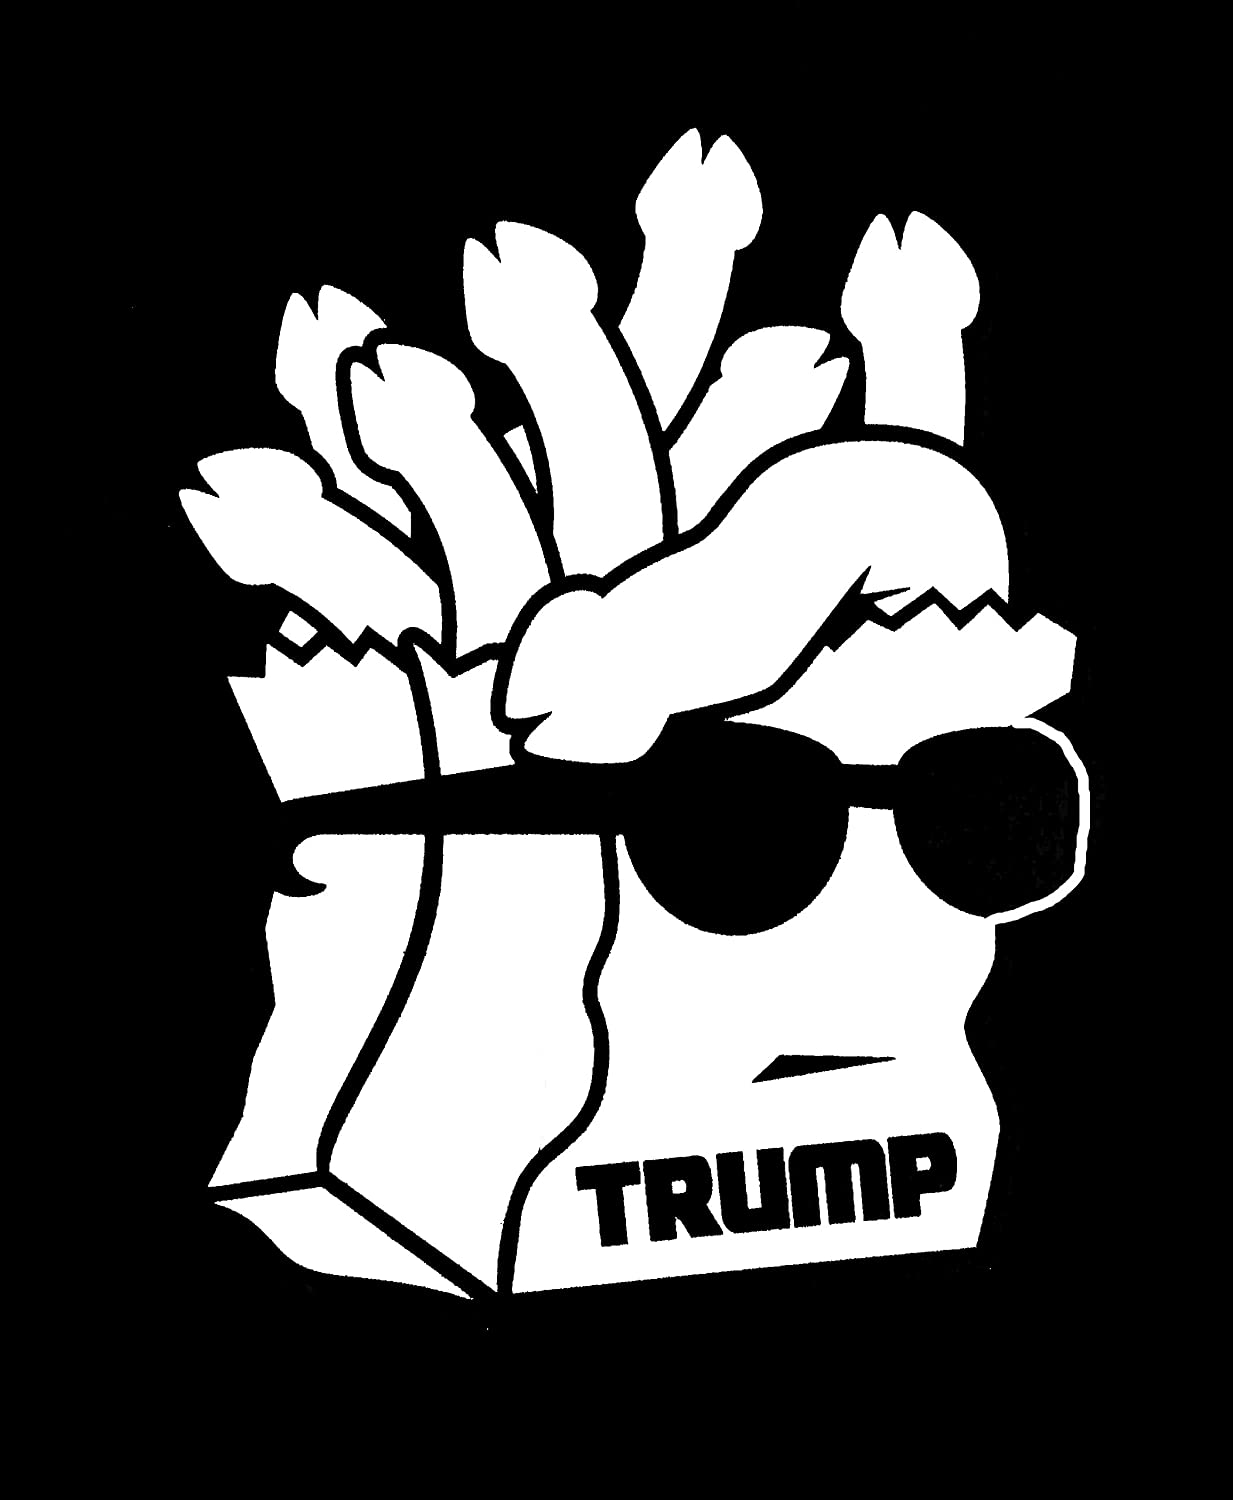 Trump Bag of Dicks Funny Decal Vinyl Sticker|Cars Trucks Vans Walls Laptop| White |5.5 x 4.3 in|DUC270